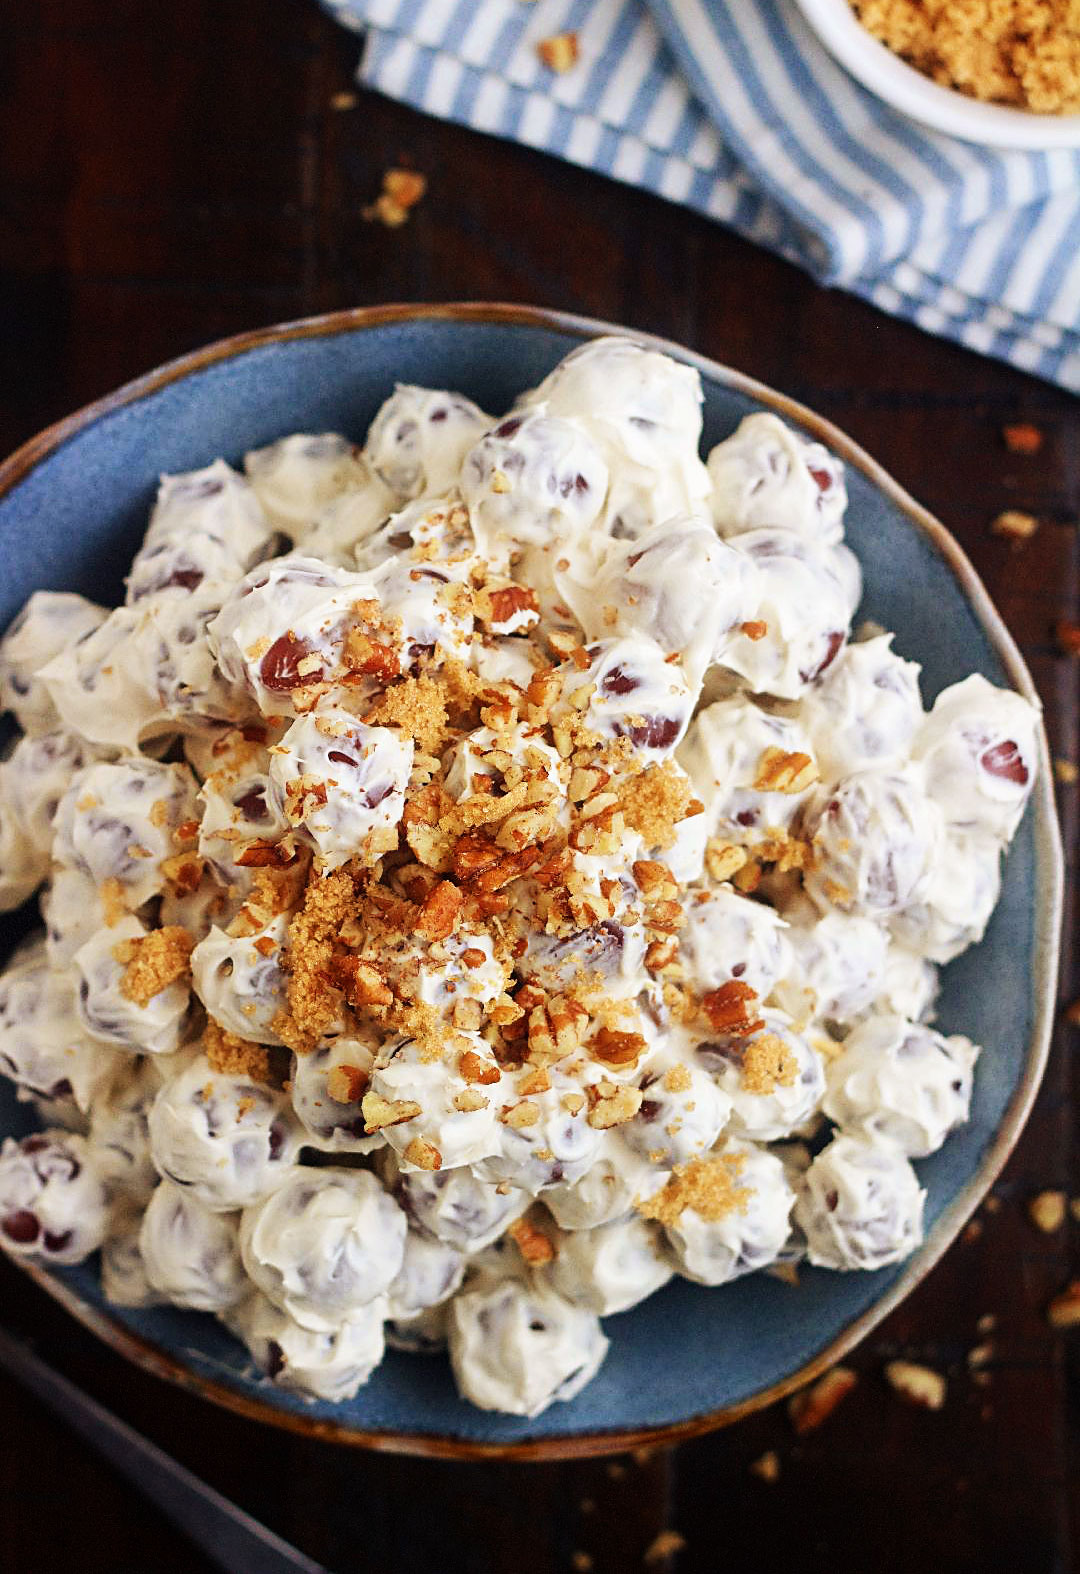 Grape Salad is full of fresh, sweet grapes, tossed in a sweet cream cheese dressing, then sprinkled with brown sugar and pecans. Life-in-the-Lofthouse.com